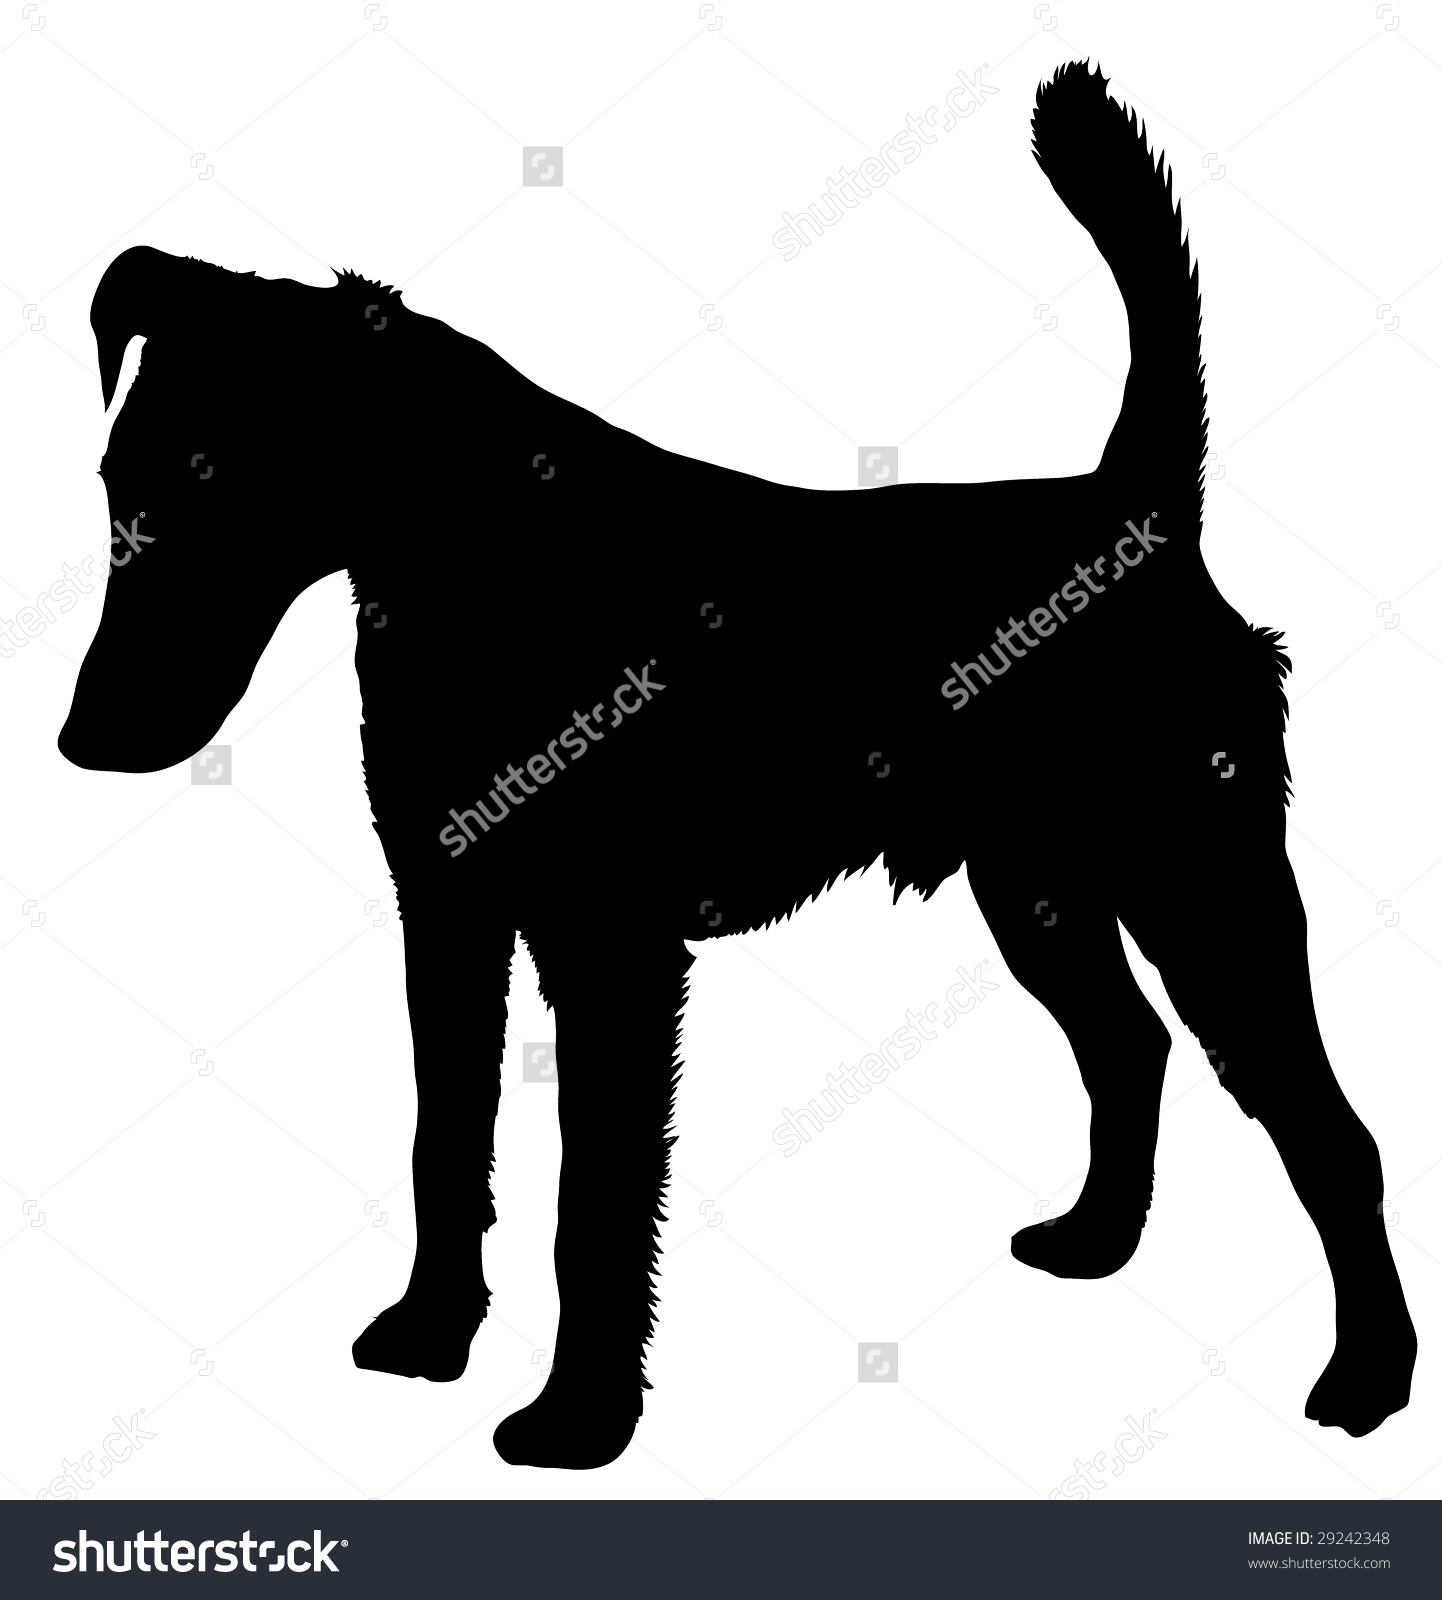 Silhouette Dog Breed Smooth Fox Terrier Stock Vector 29242348.